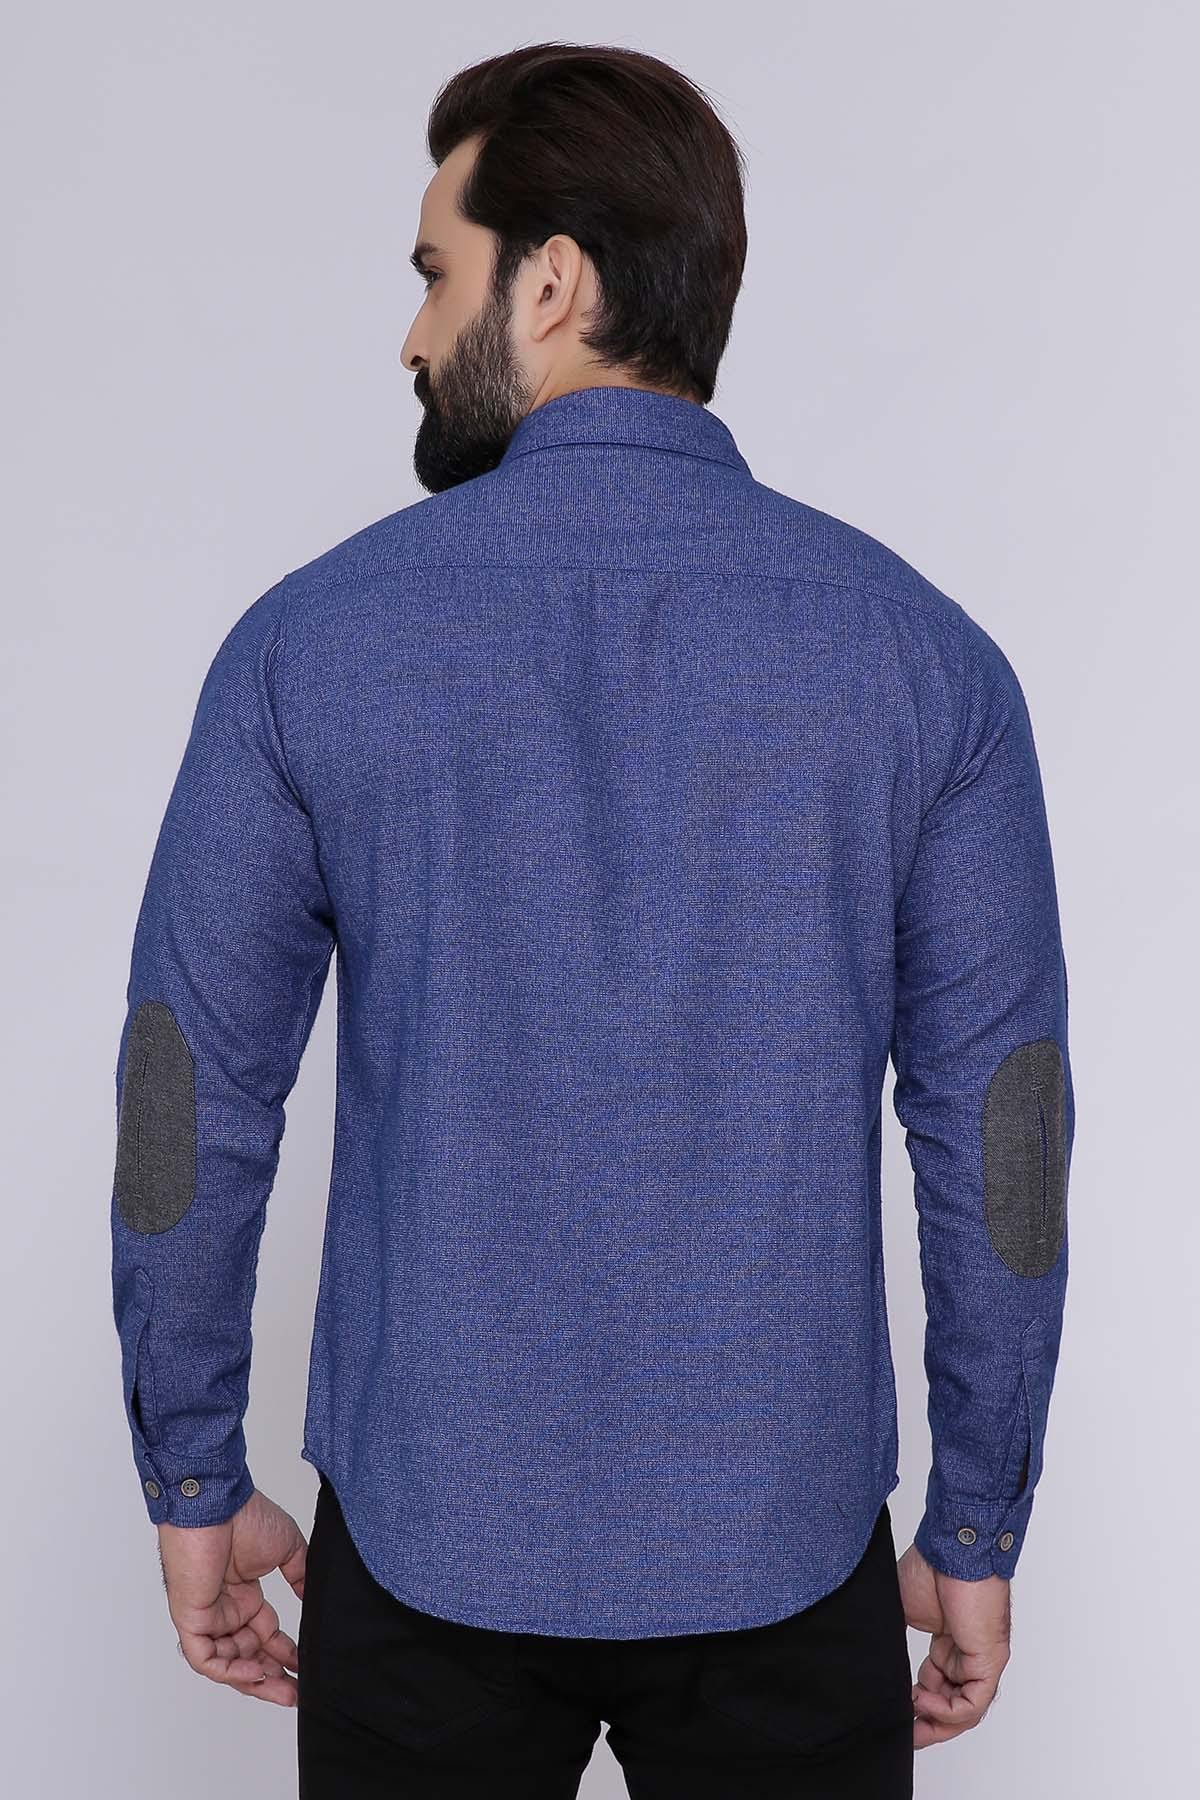 CASUAL SHIRT FULL SLEEVE SLIM FIT BLUE - Charcoal - SHIRTS -